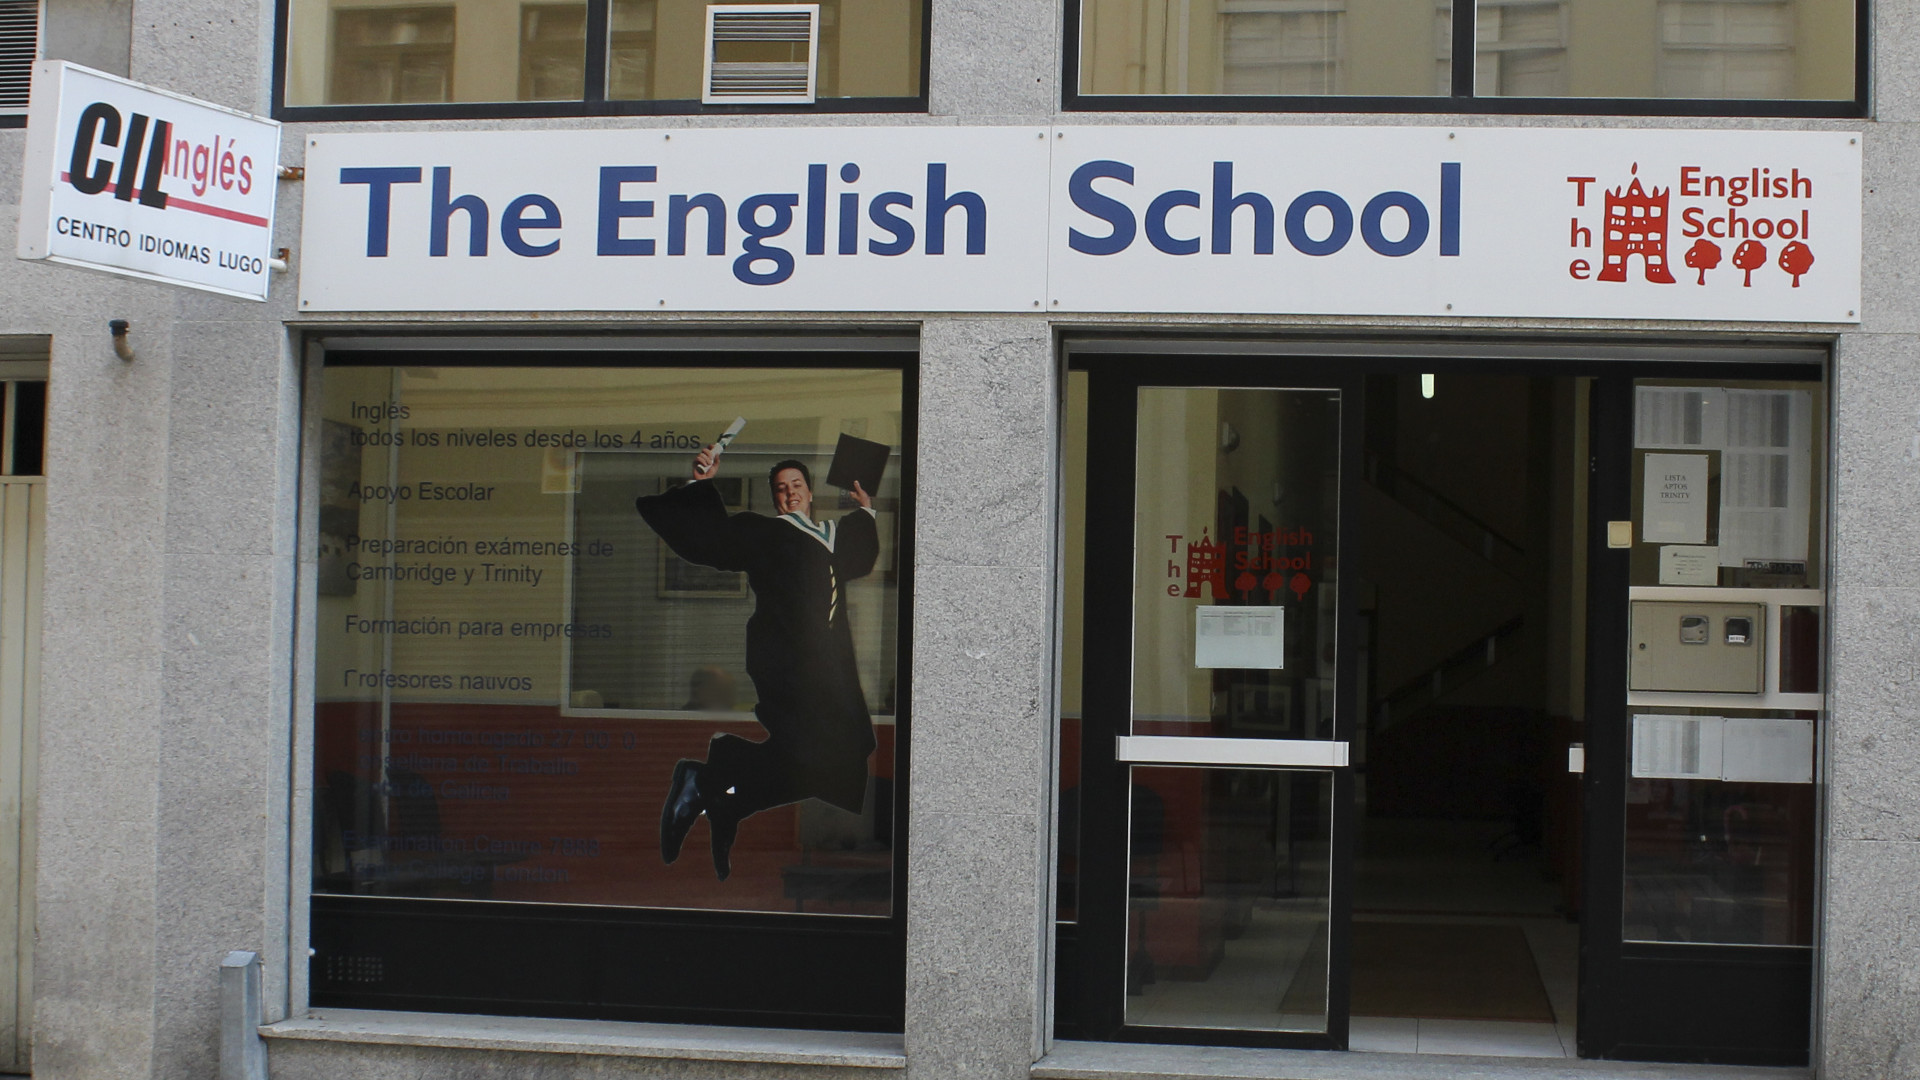 english-school-header-02